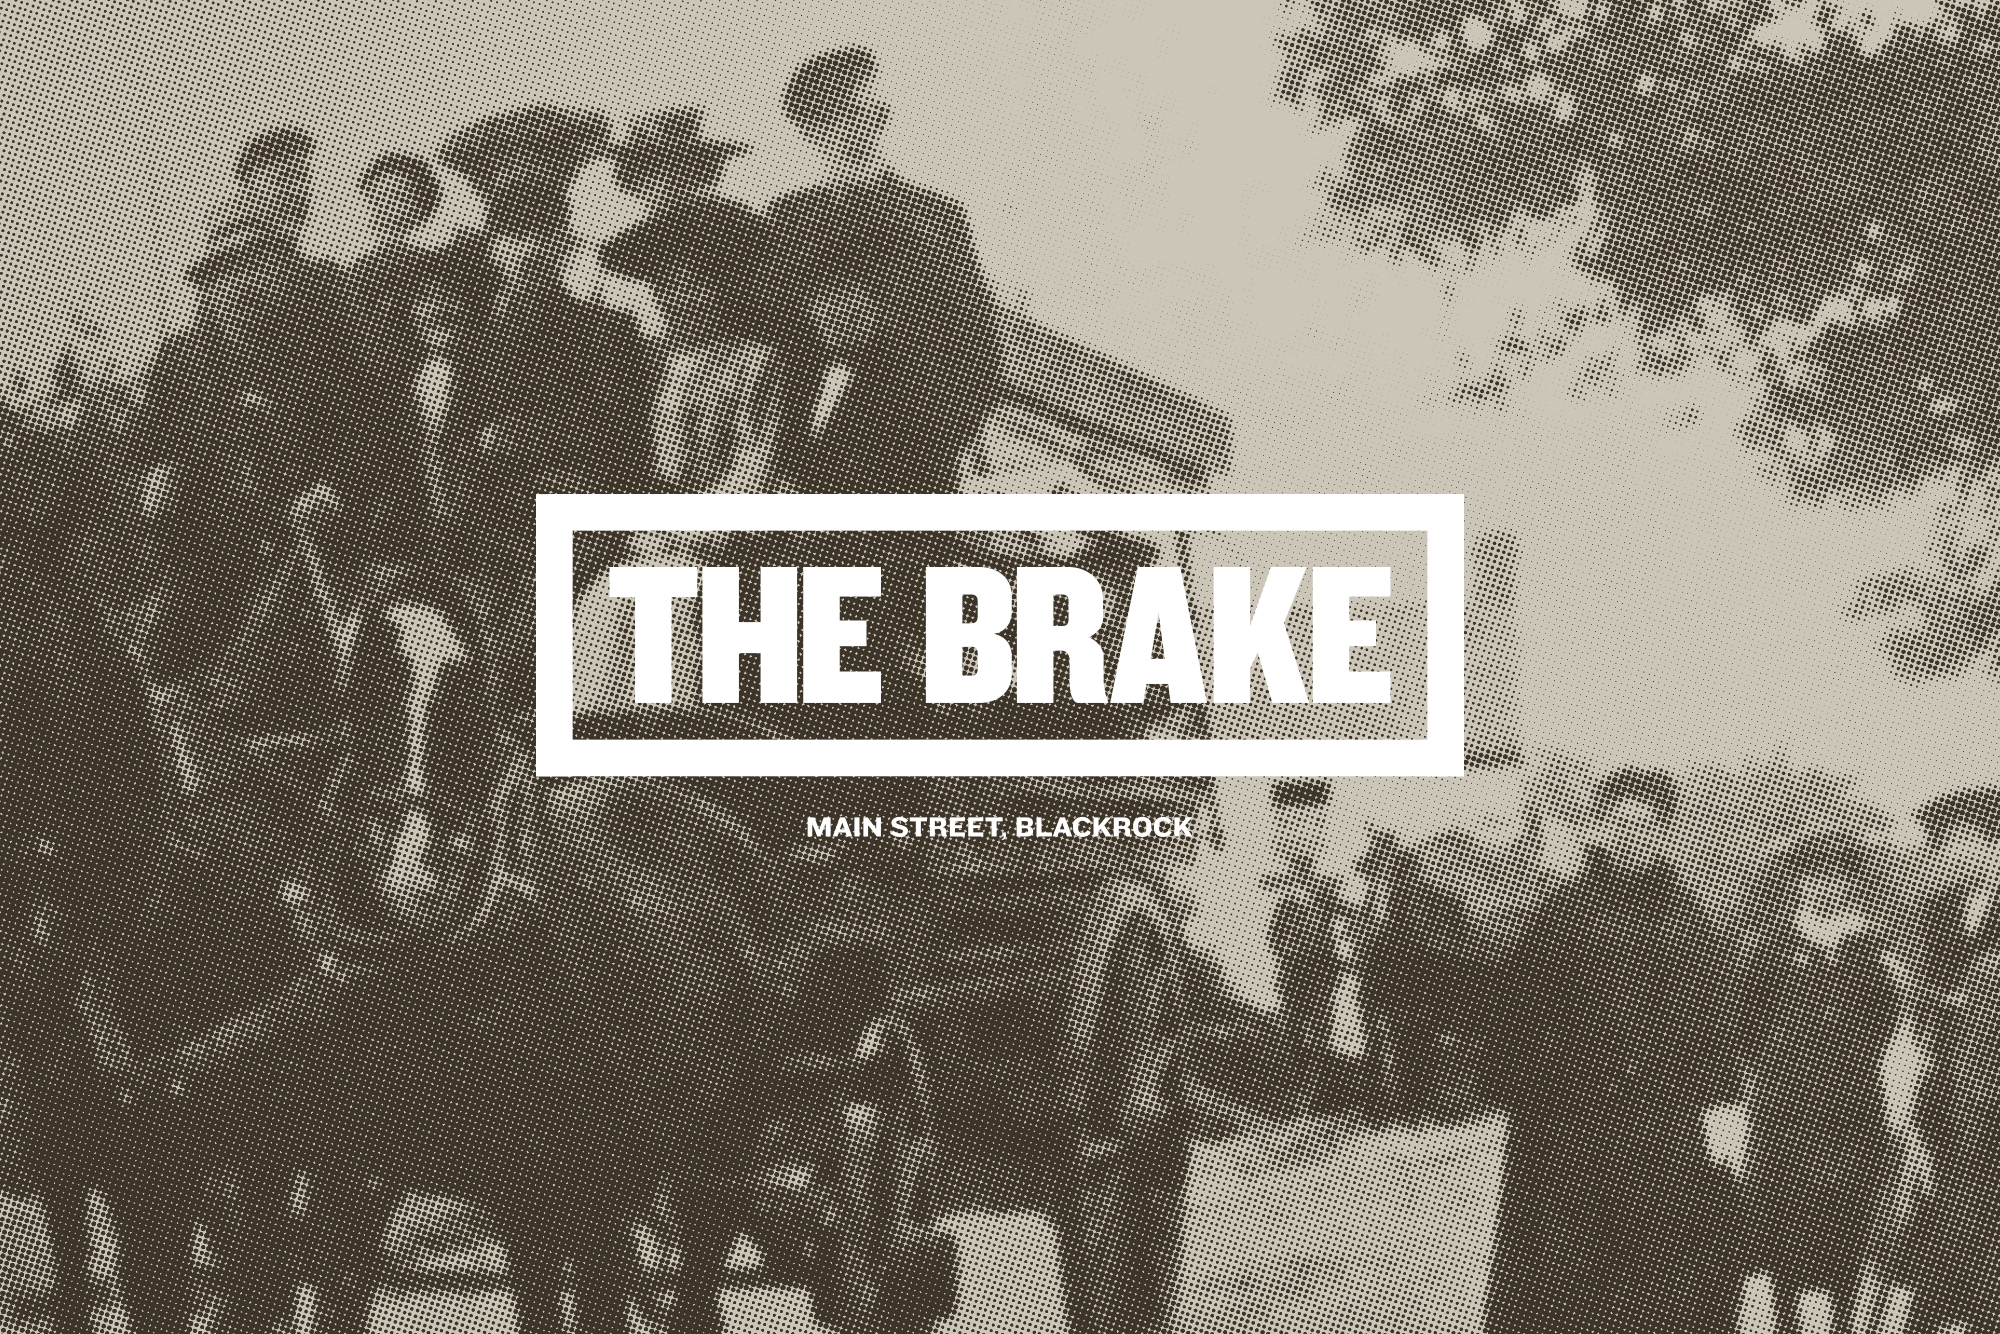 Cover image: The Brake